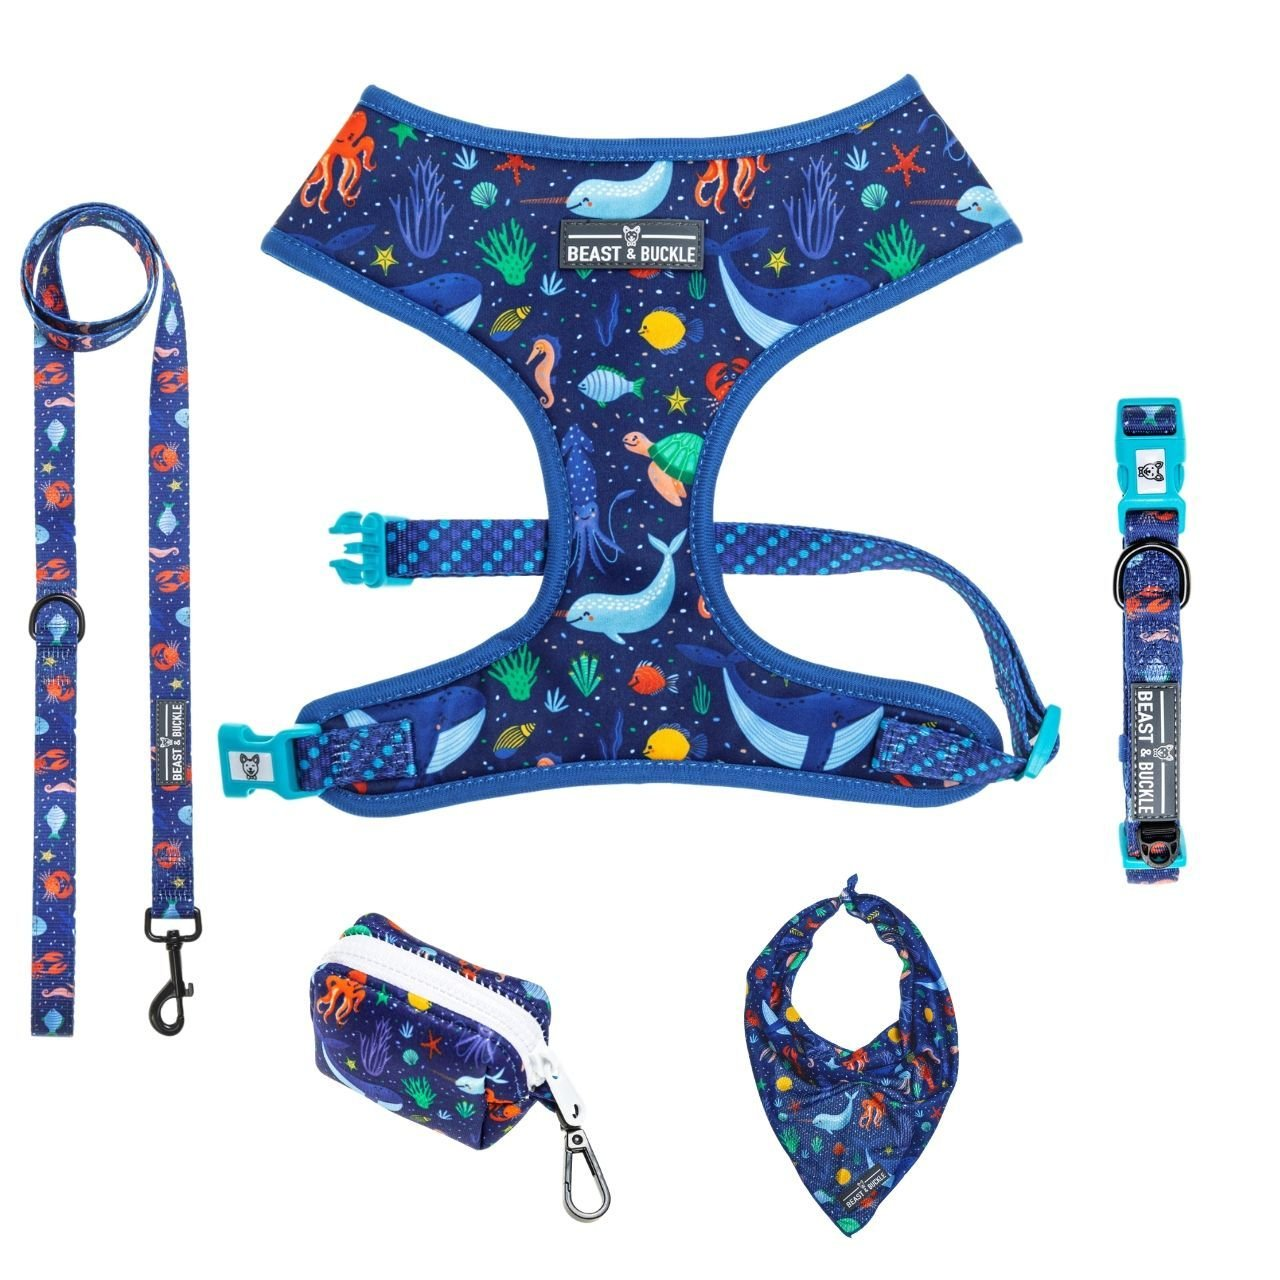 Under the Sea Collection Bundle - Beast & Buckle